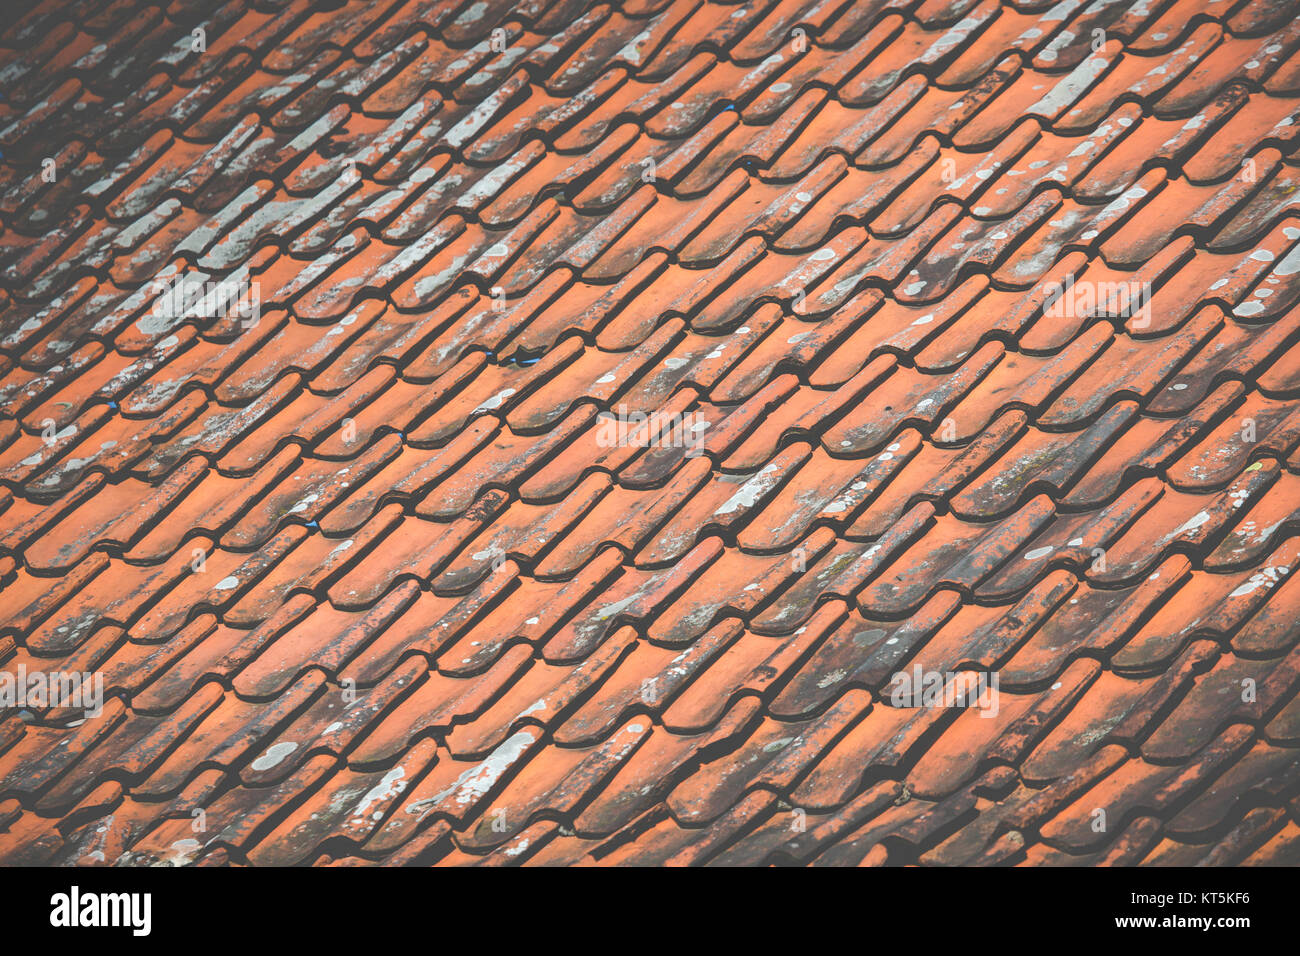 Home Roofing Design Stock Photos Amp Home Roofing Design